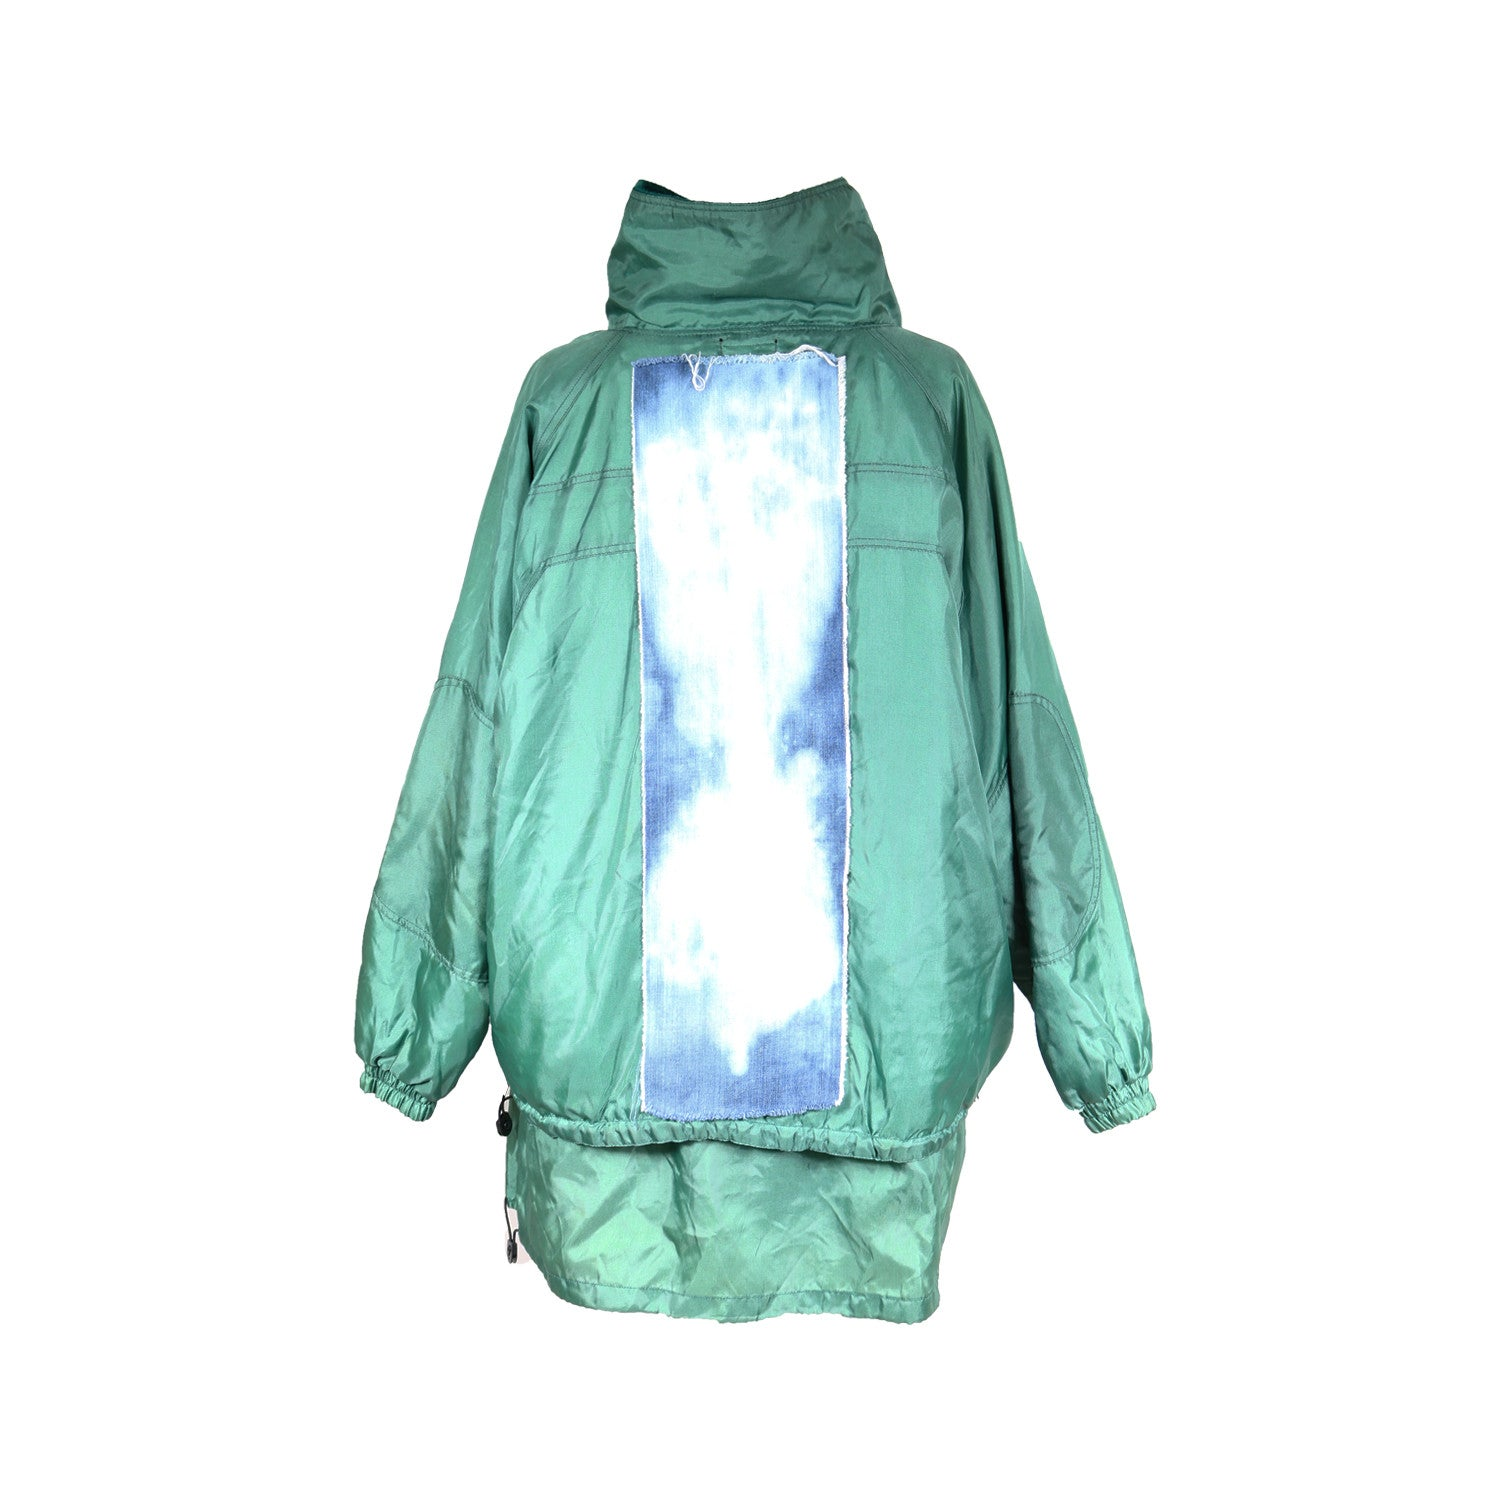 WINDOWS JACKET